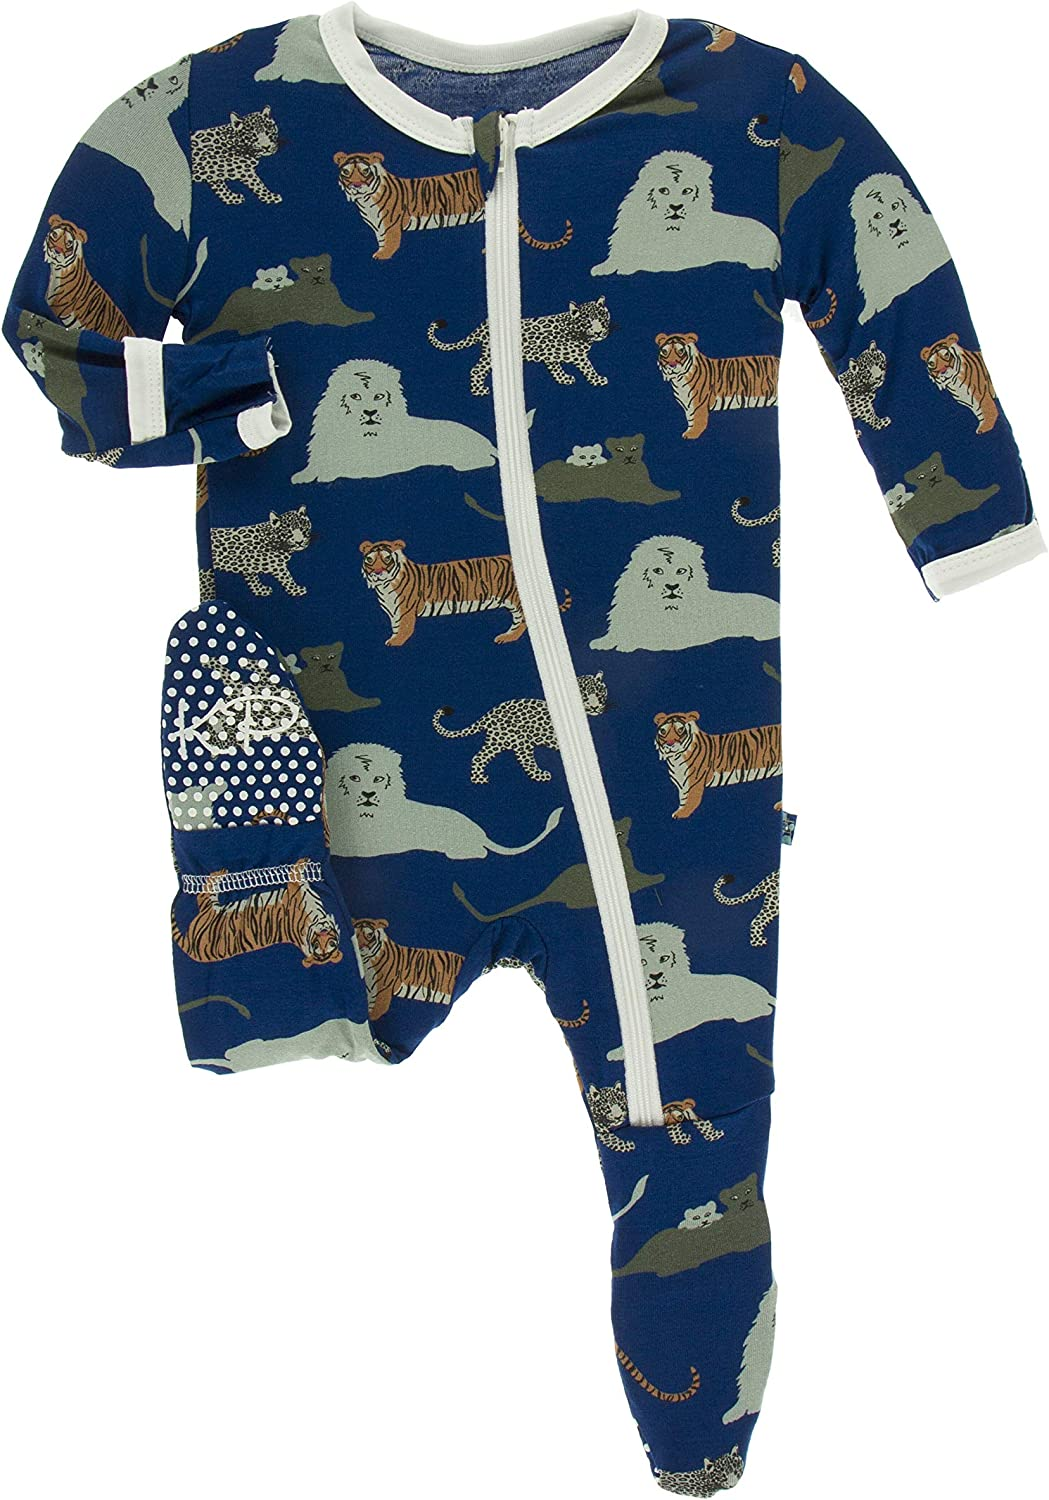 KicKee Pants Print Footie with Zipper (Flag Blue Big Cats - 0-3 Months)